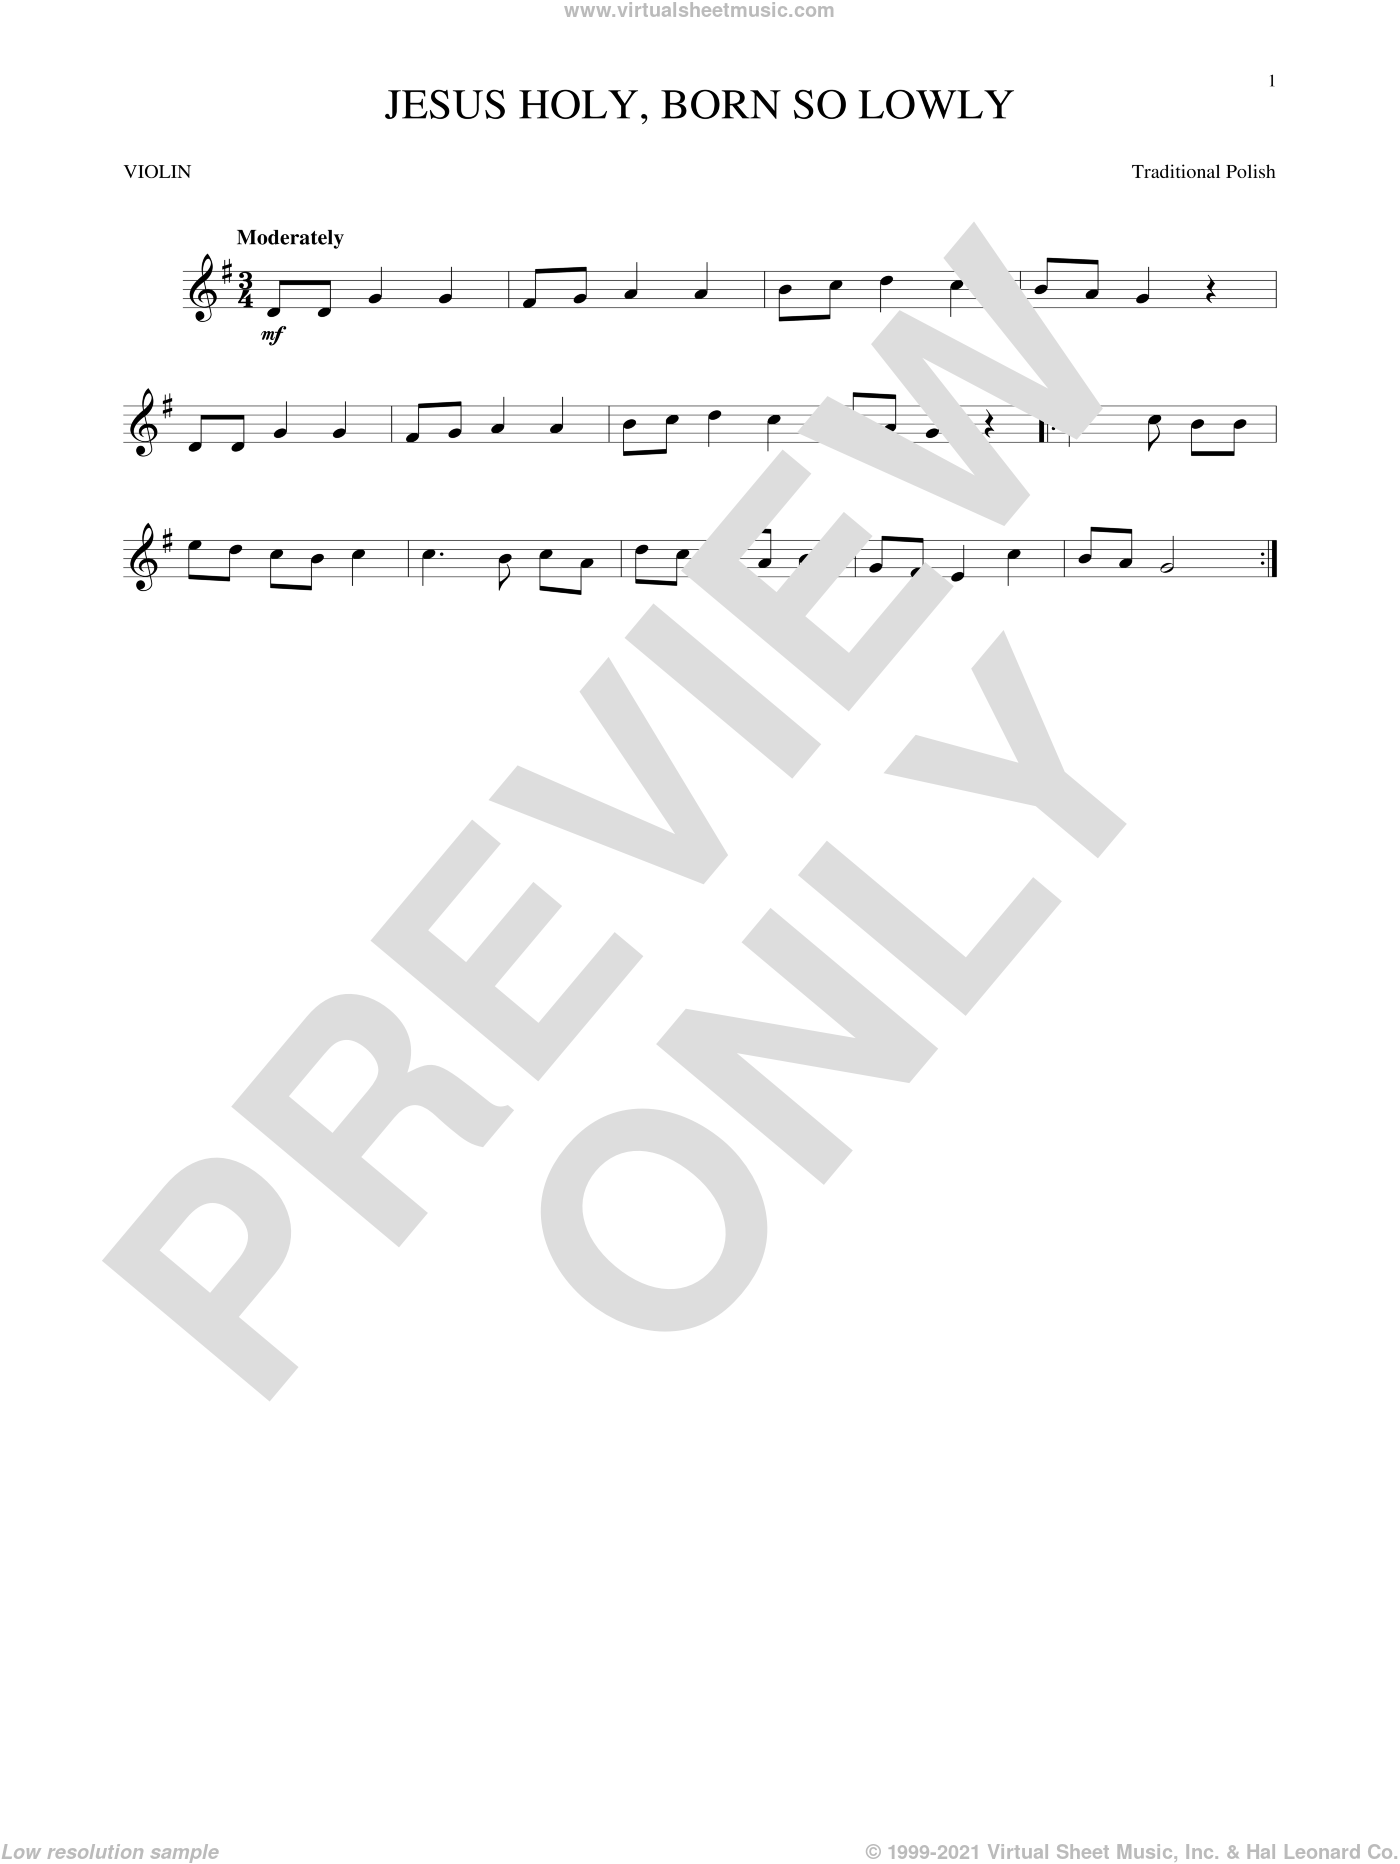 Jesus Holy, Born So Lowly sheet music for violin solo